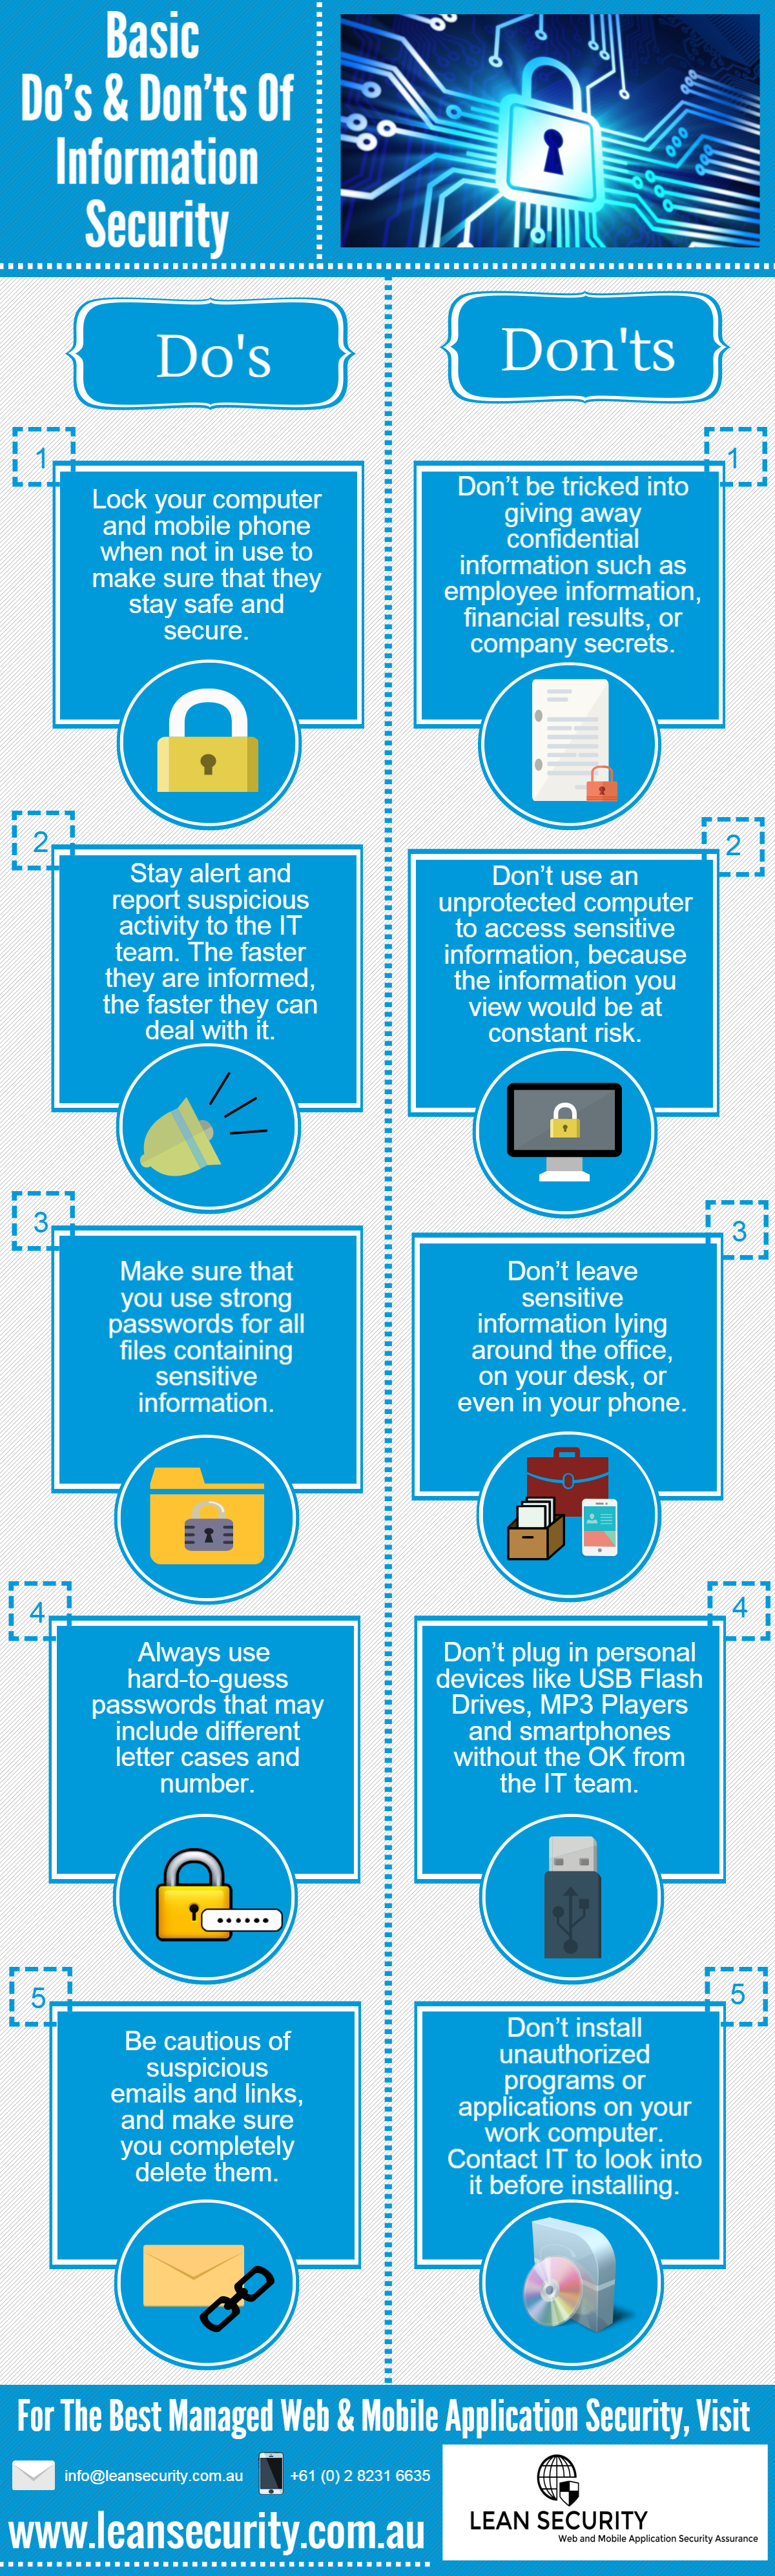 Basic Do's and Don'ts of Information Security